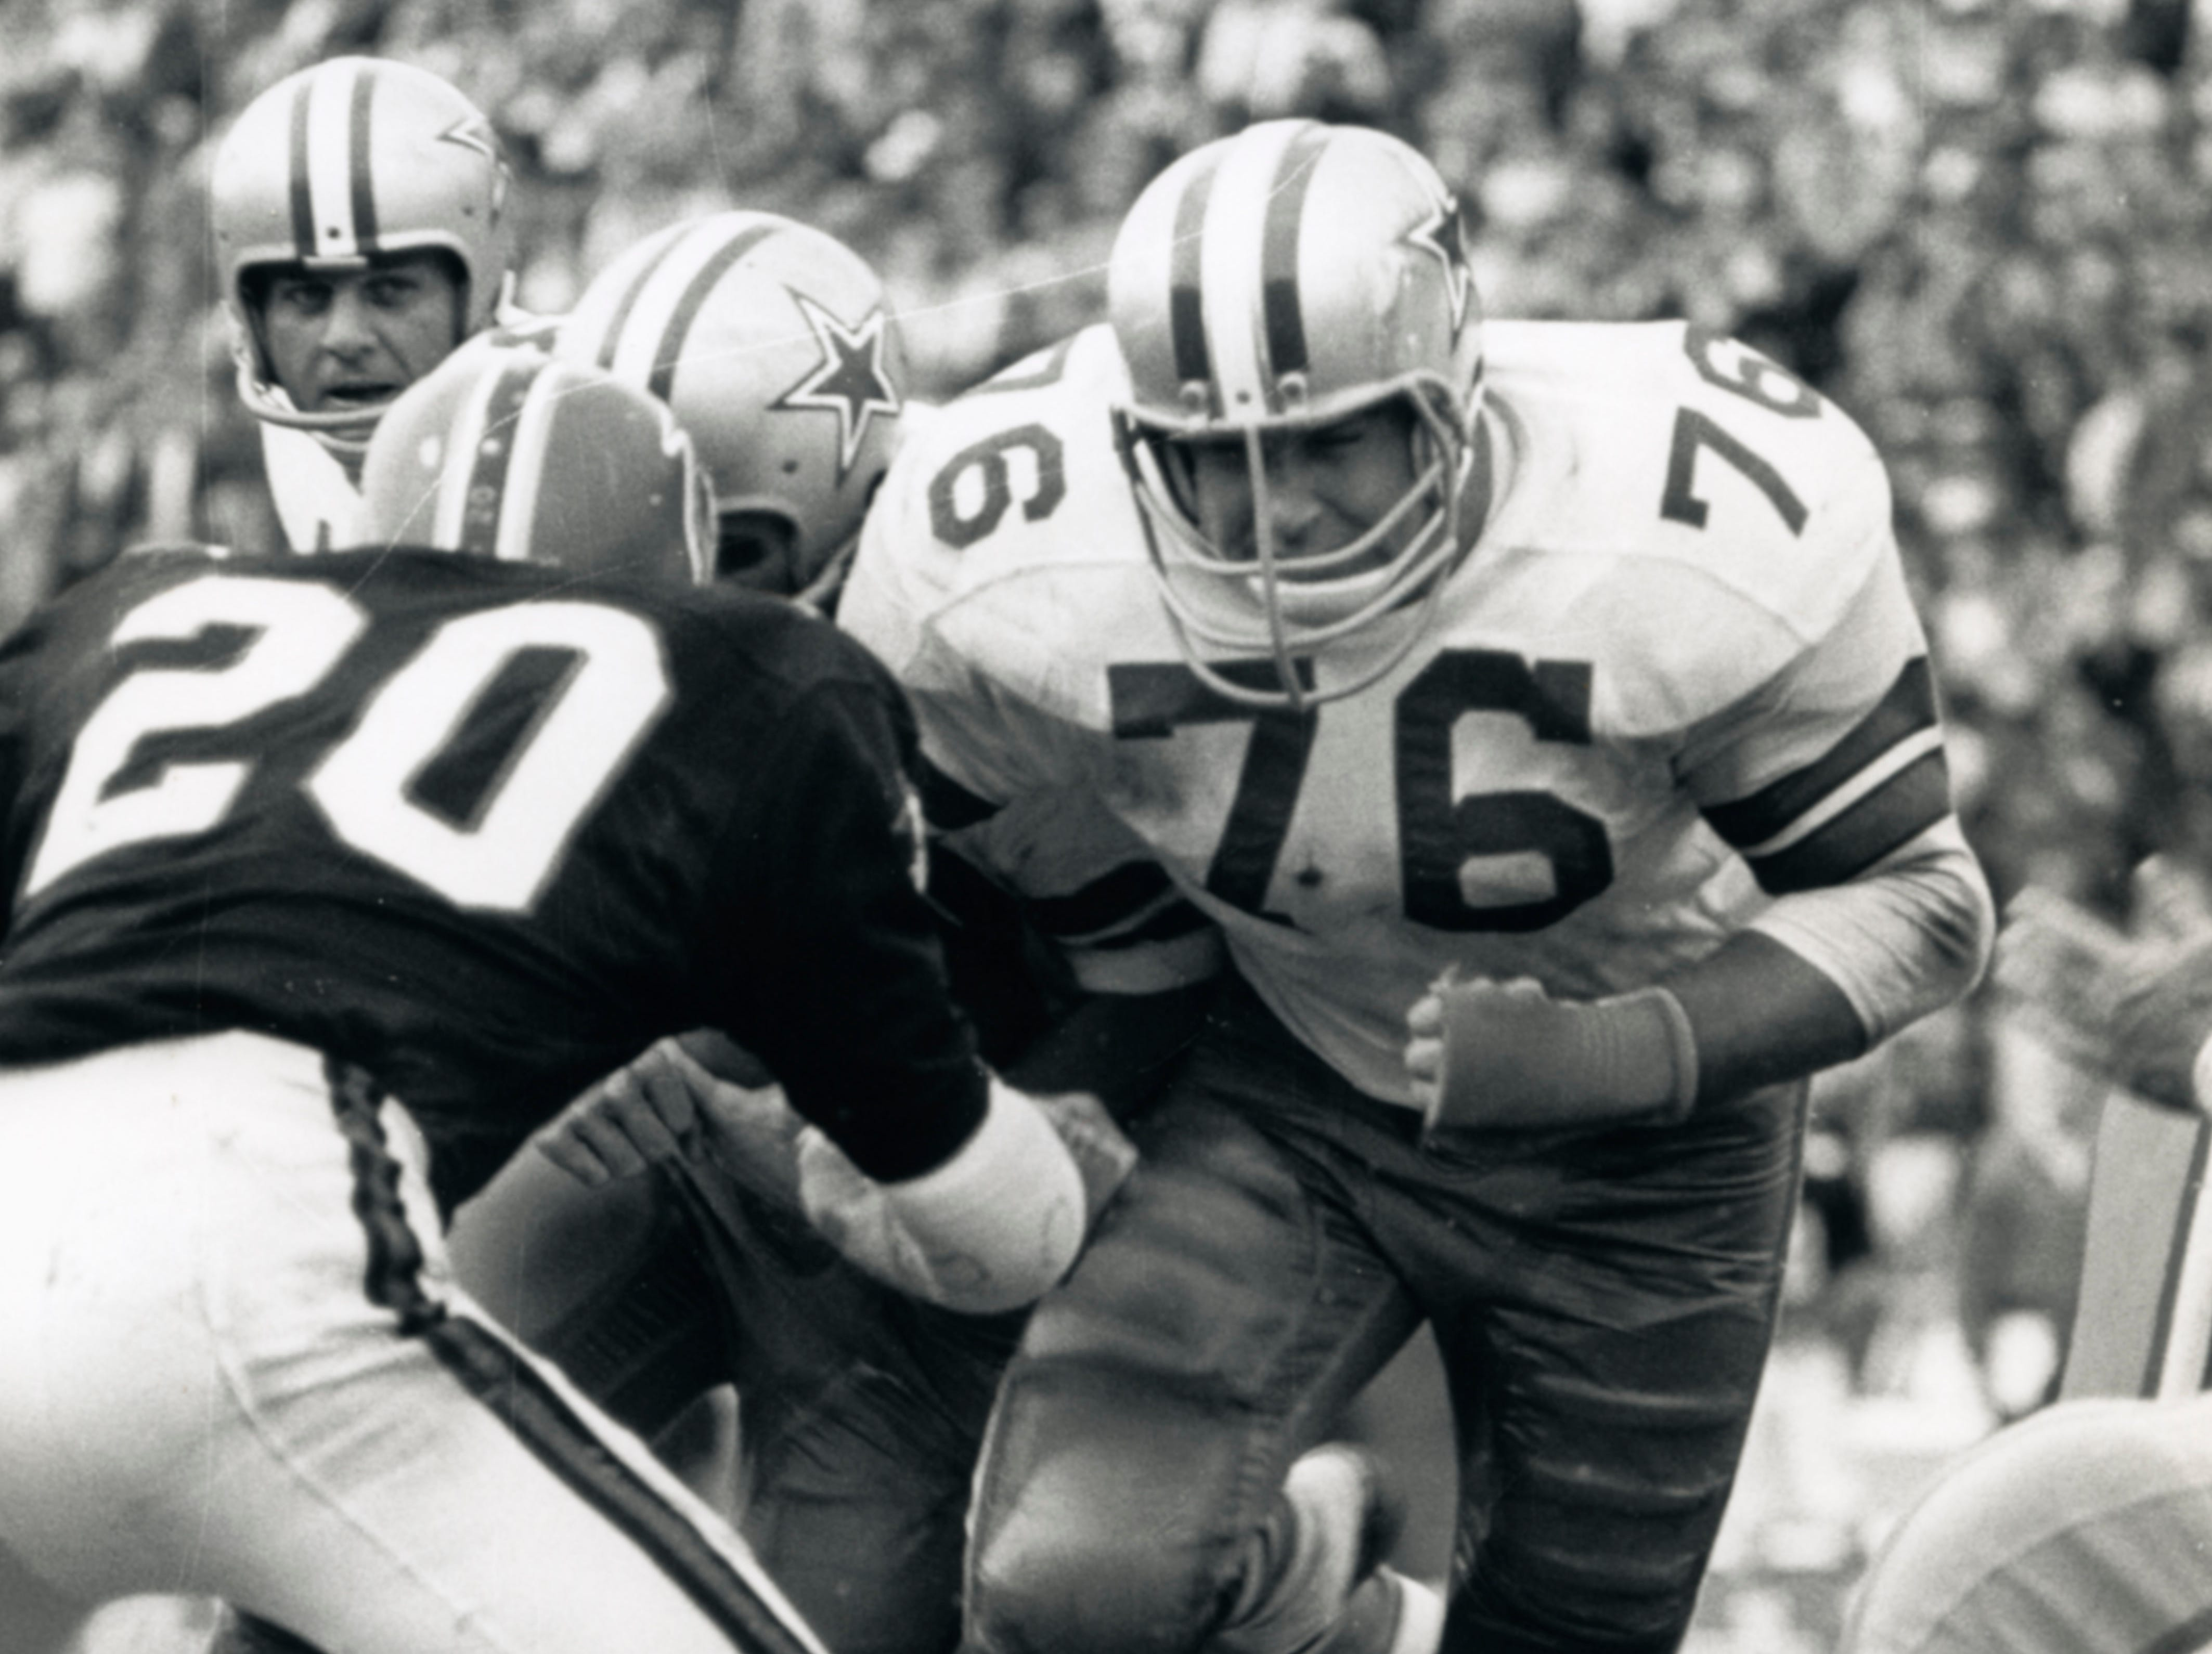 Dallas Cowboys guard John Niland (76) in action during a 1967 game against the Atlanta Falcons. Niland, a former Iowa Hawkeye, was taken fifth overall by the Cowboys in the 1966 NFL Draft.